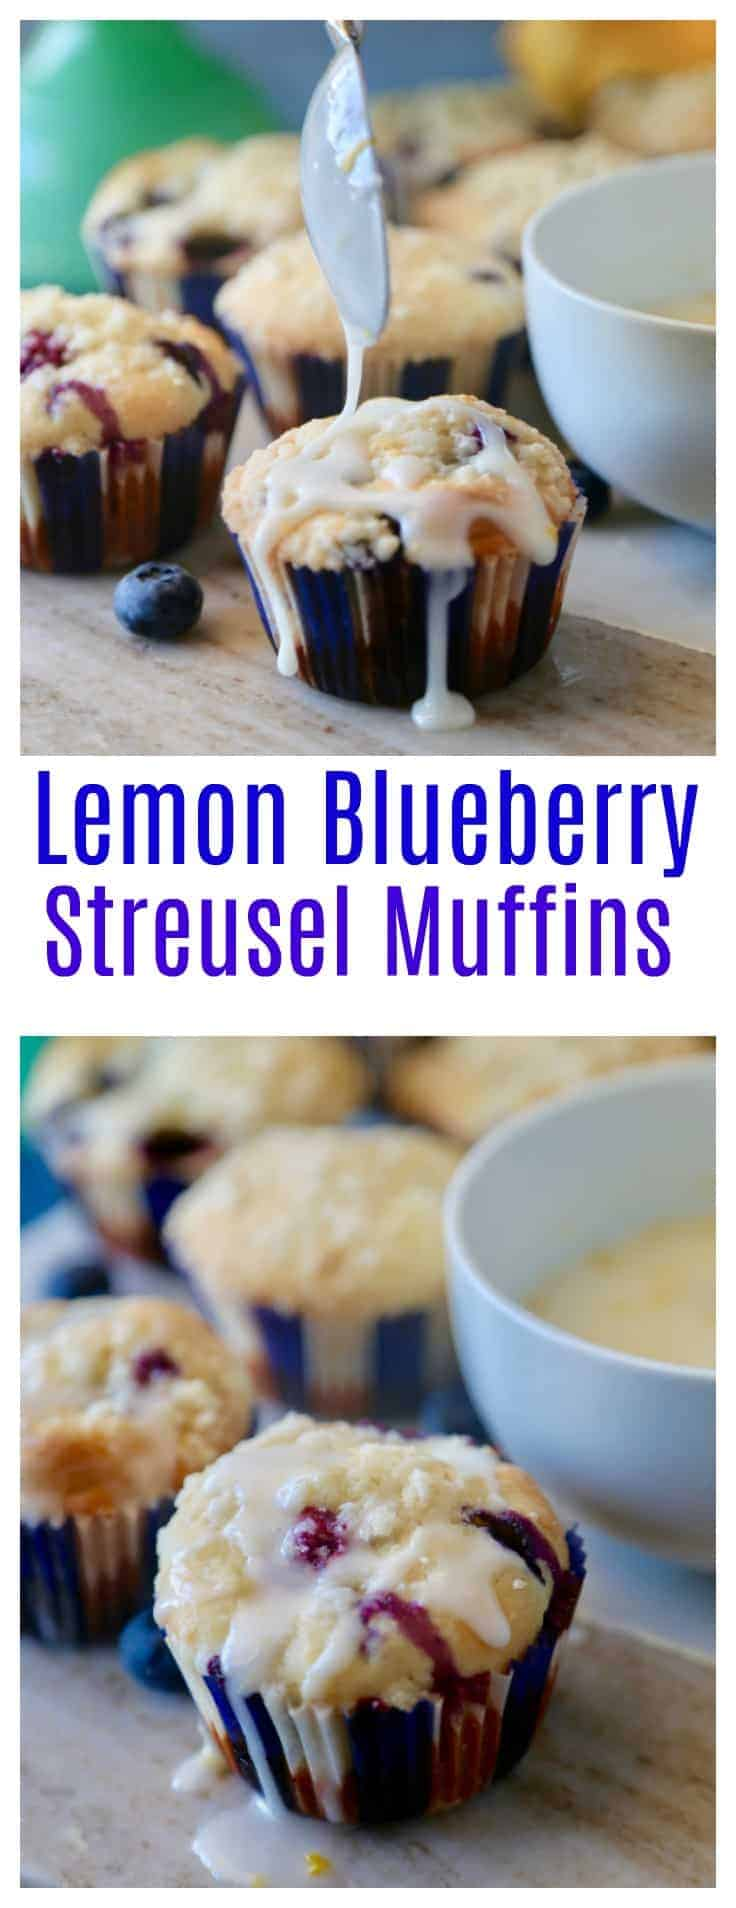 Lemon Blueberry Streusel Muffins